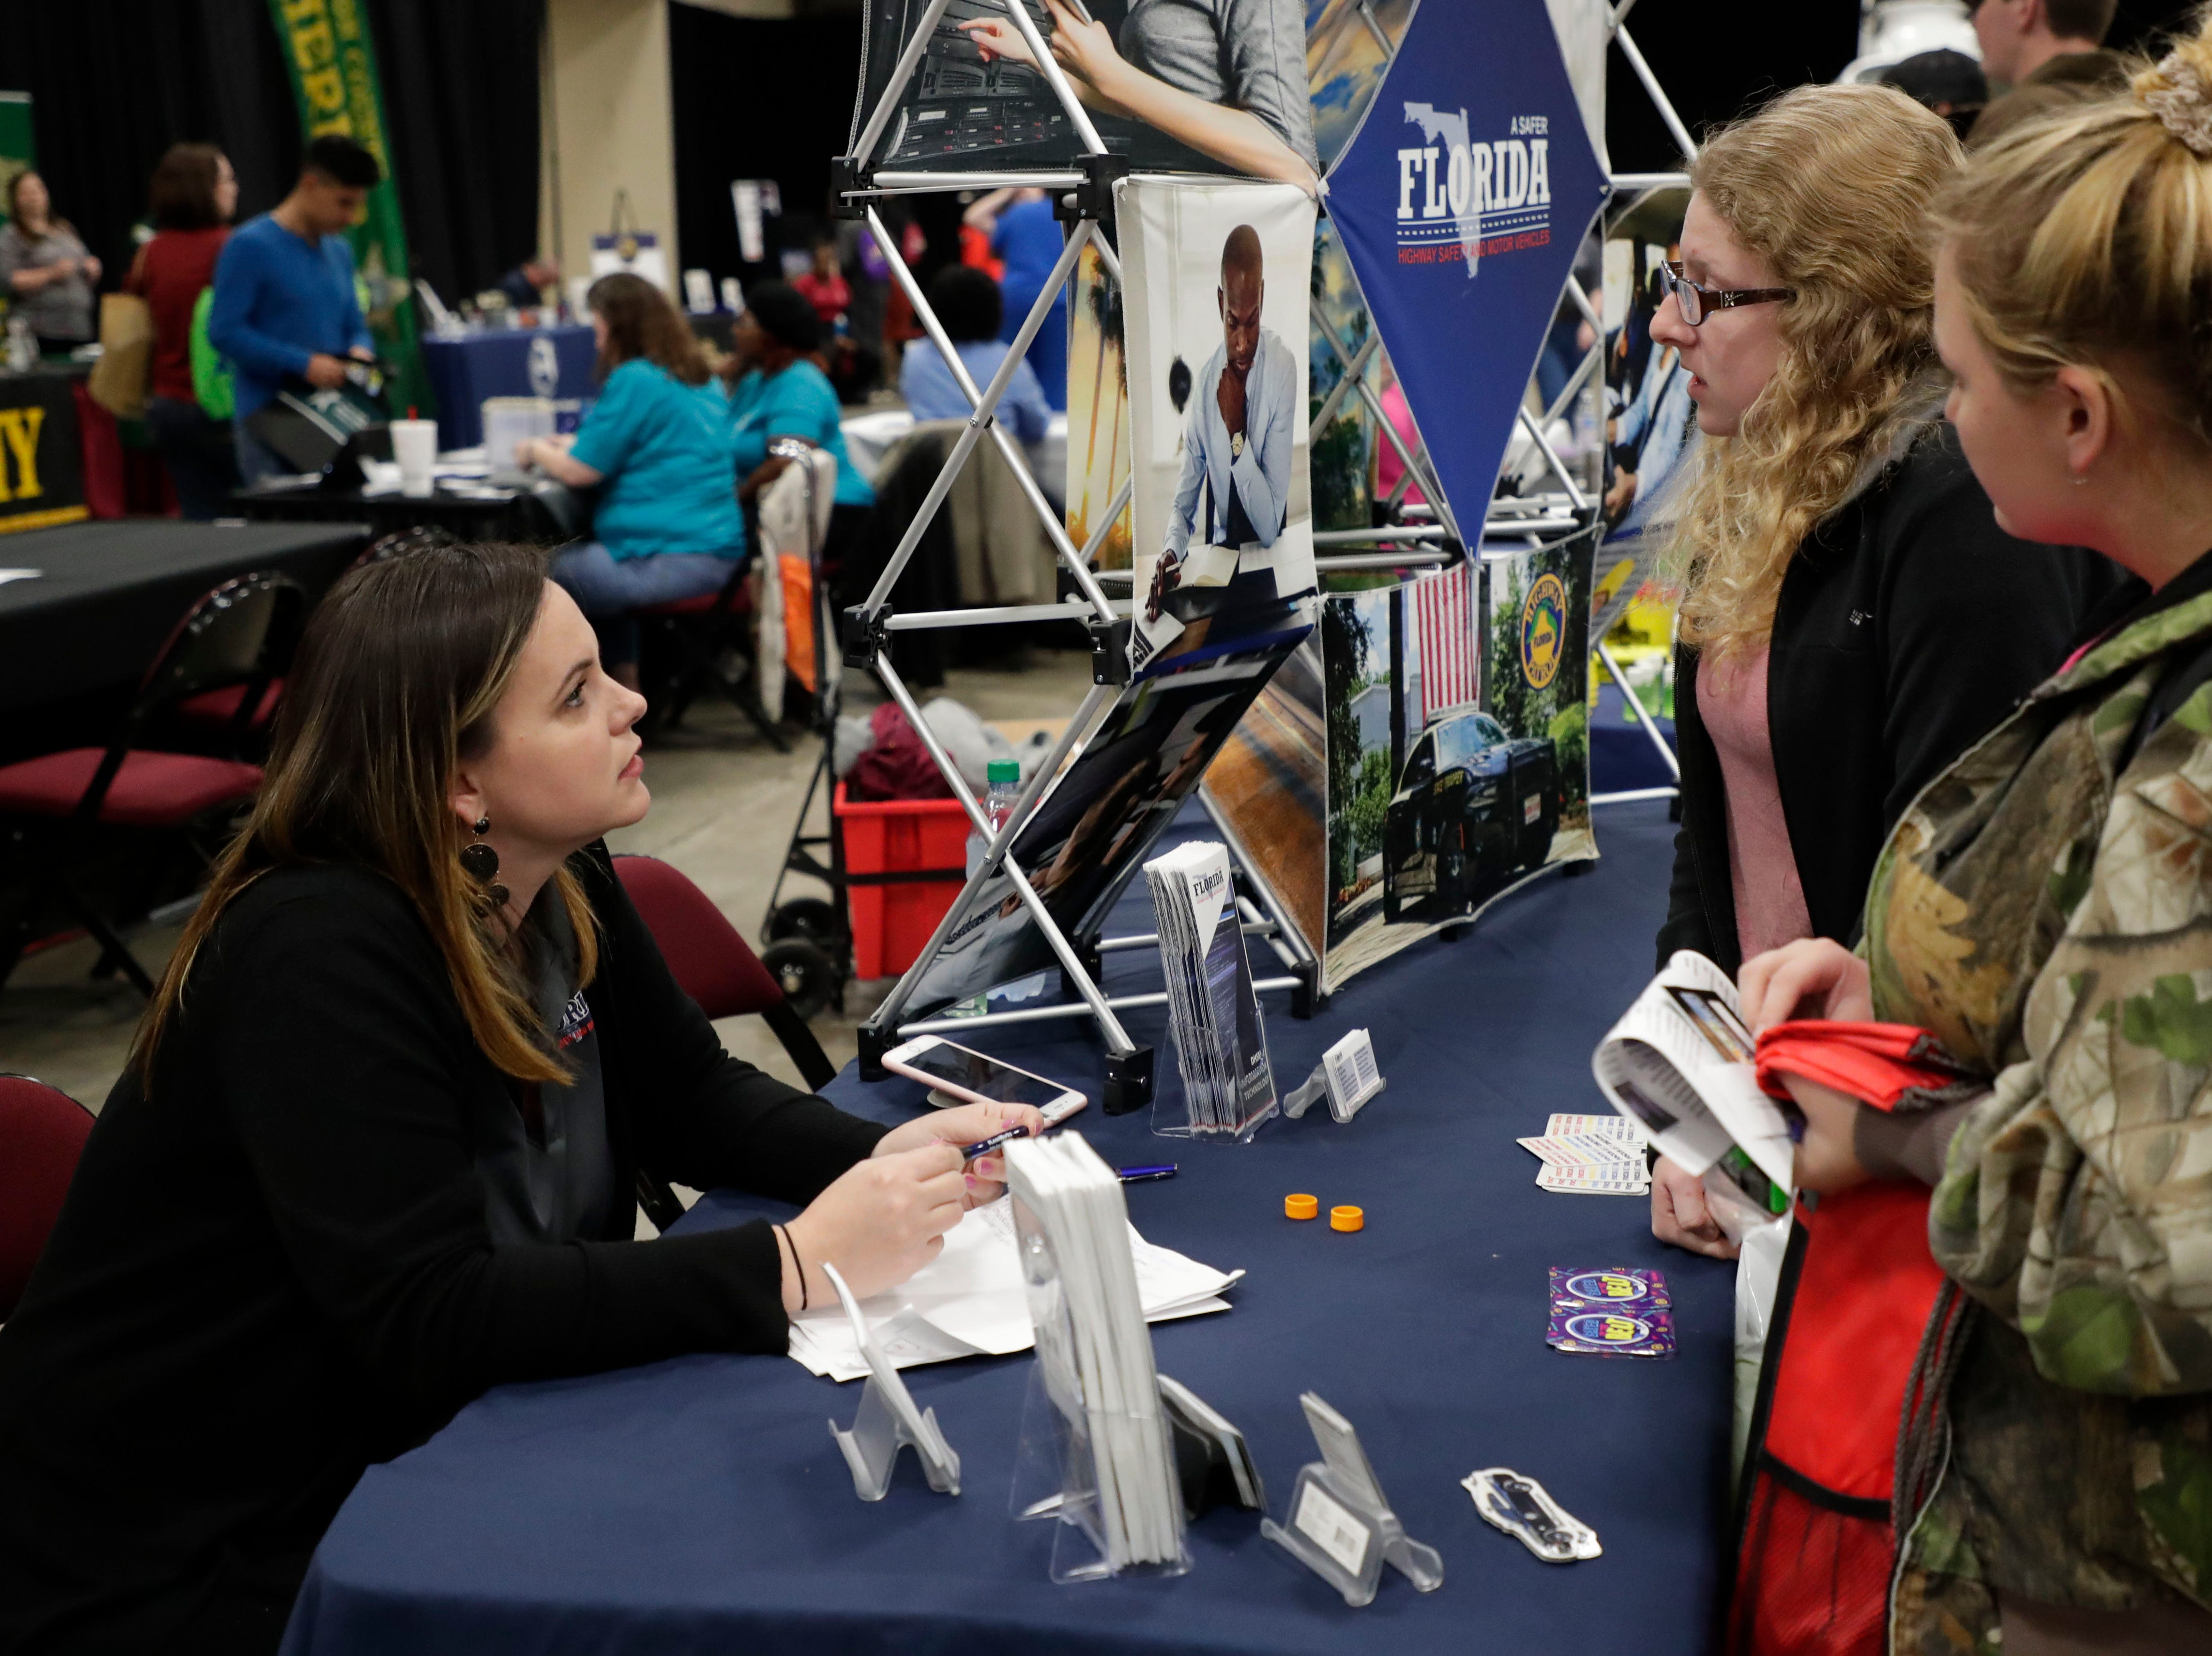 Desiree Aller, lead recruiter for Florida Highway and Patrol, left, talks to Wakulla High School seniors Haley Taylor, center, and Makayla Colvin about a potential career path. High school students throughout Leon County attended the Leon Works Expo at the Tucker Civic Center Friday March 8, 2019.